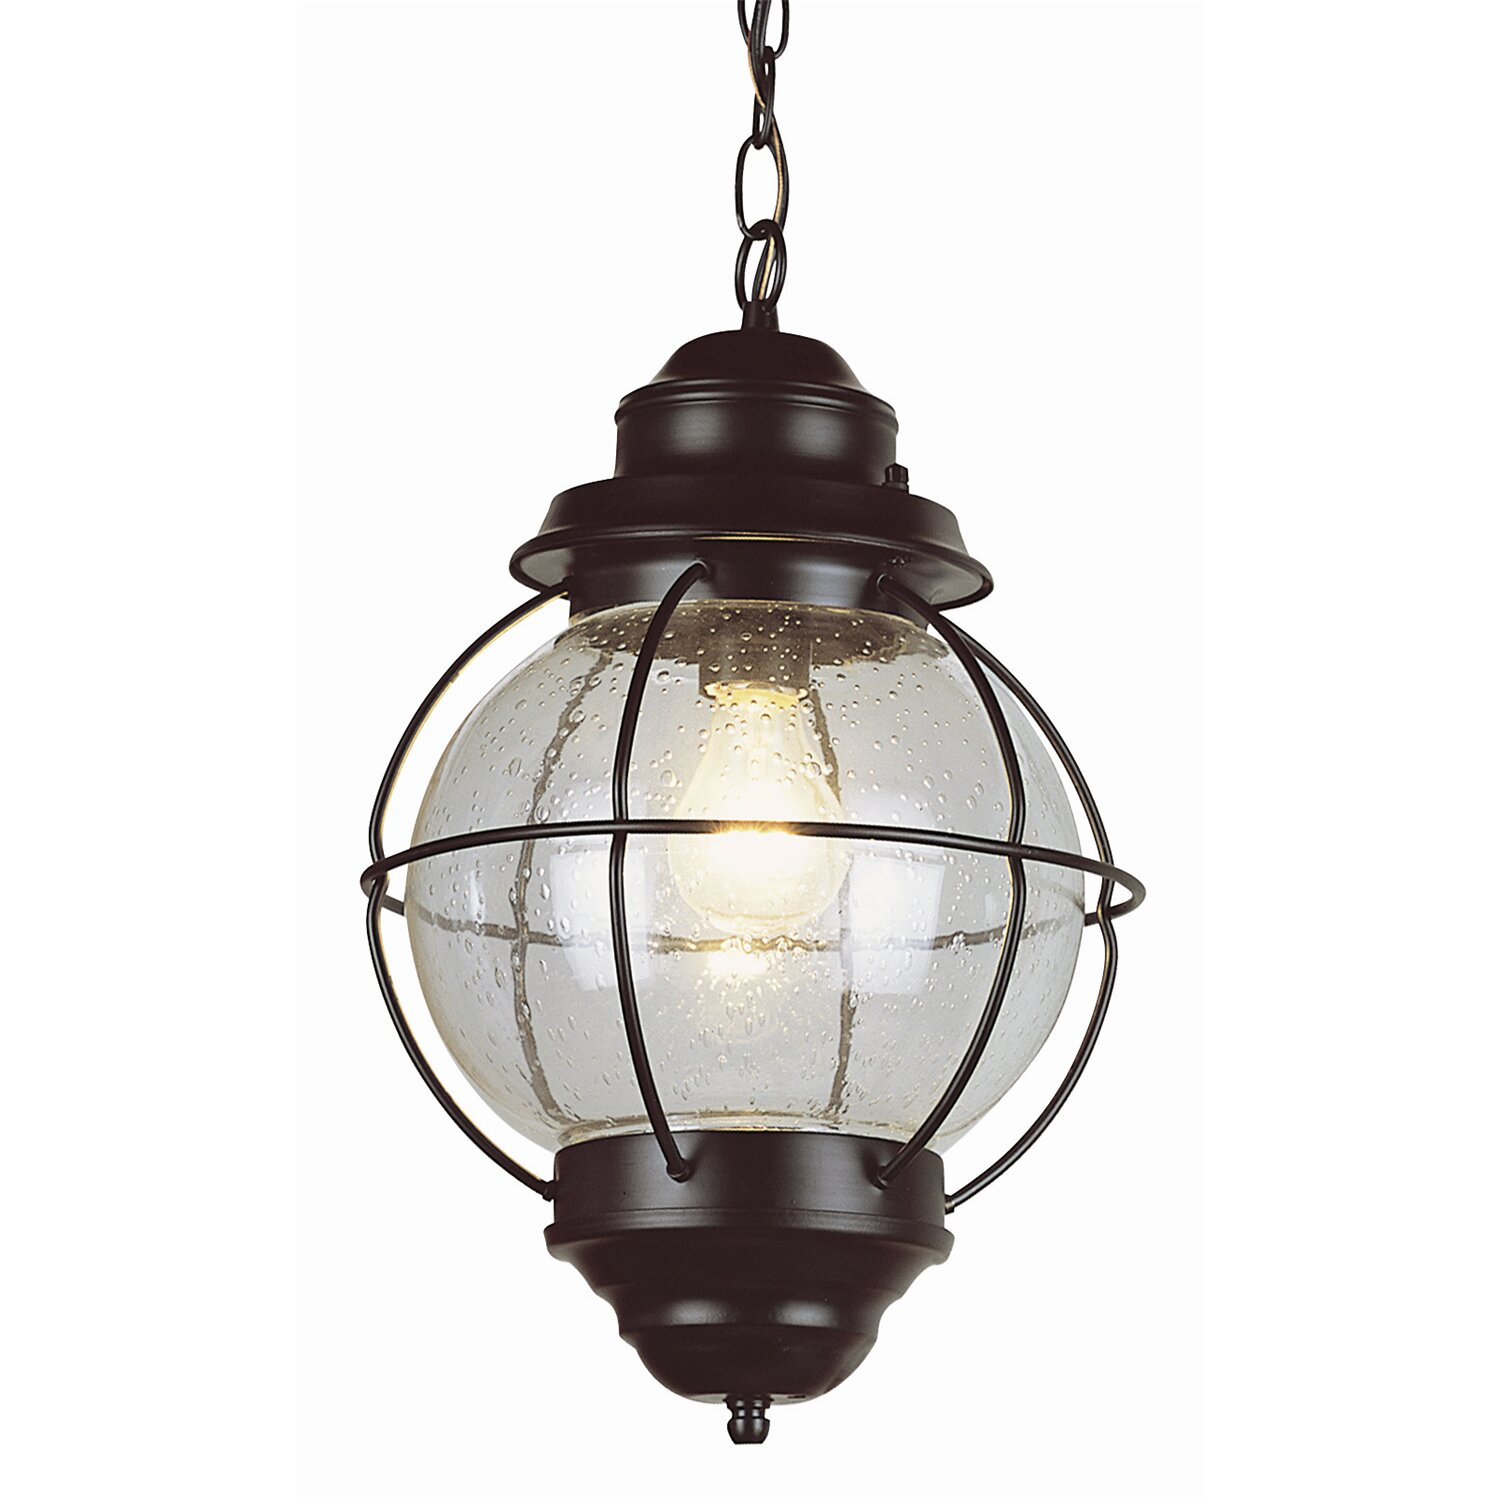 Transglobe Lighting Outdoor Onion